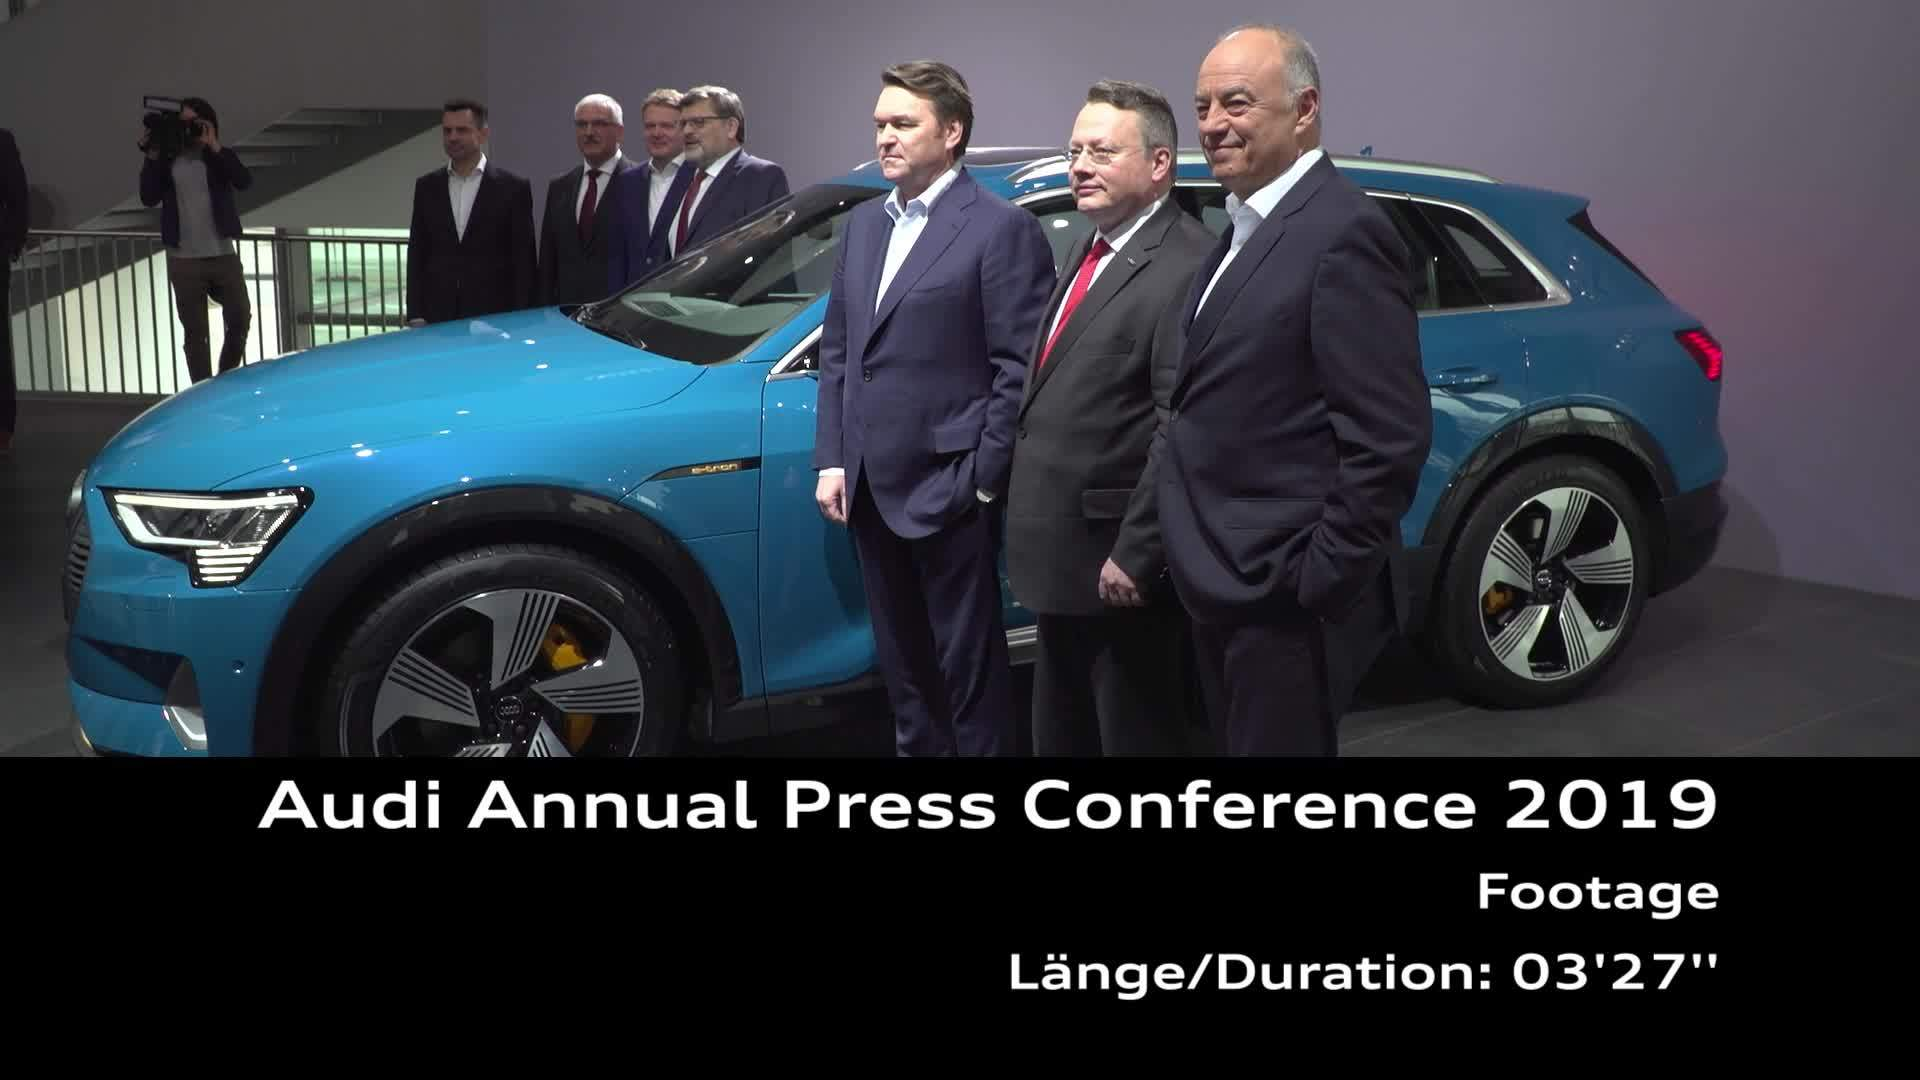 On Location Footage Audi Annual Press Conference 2019